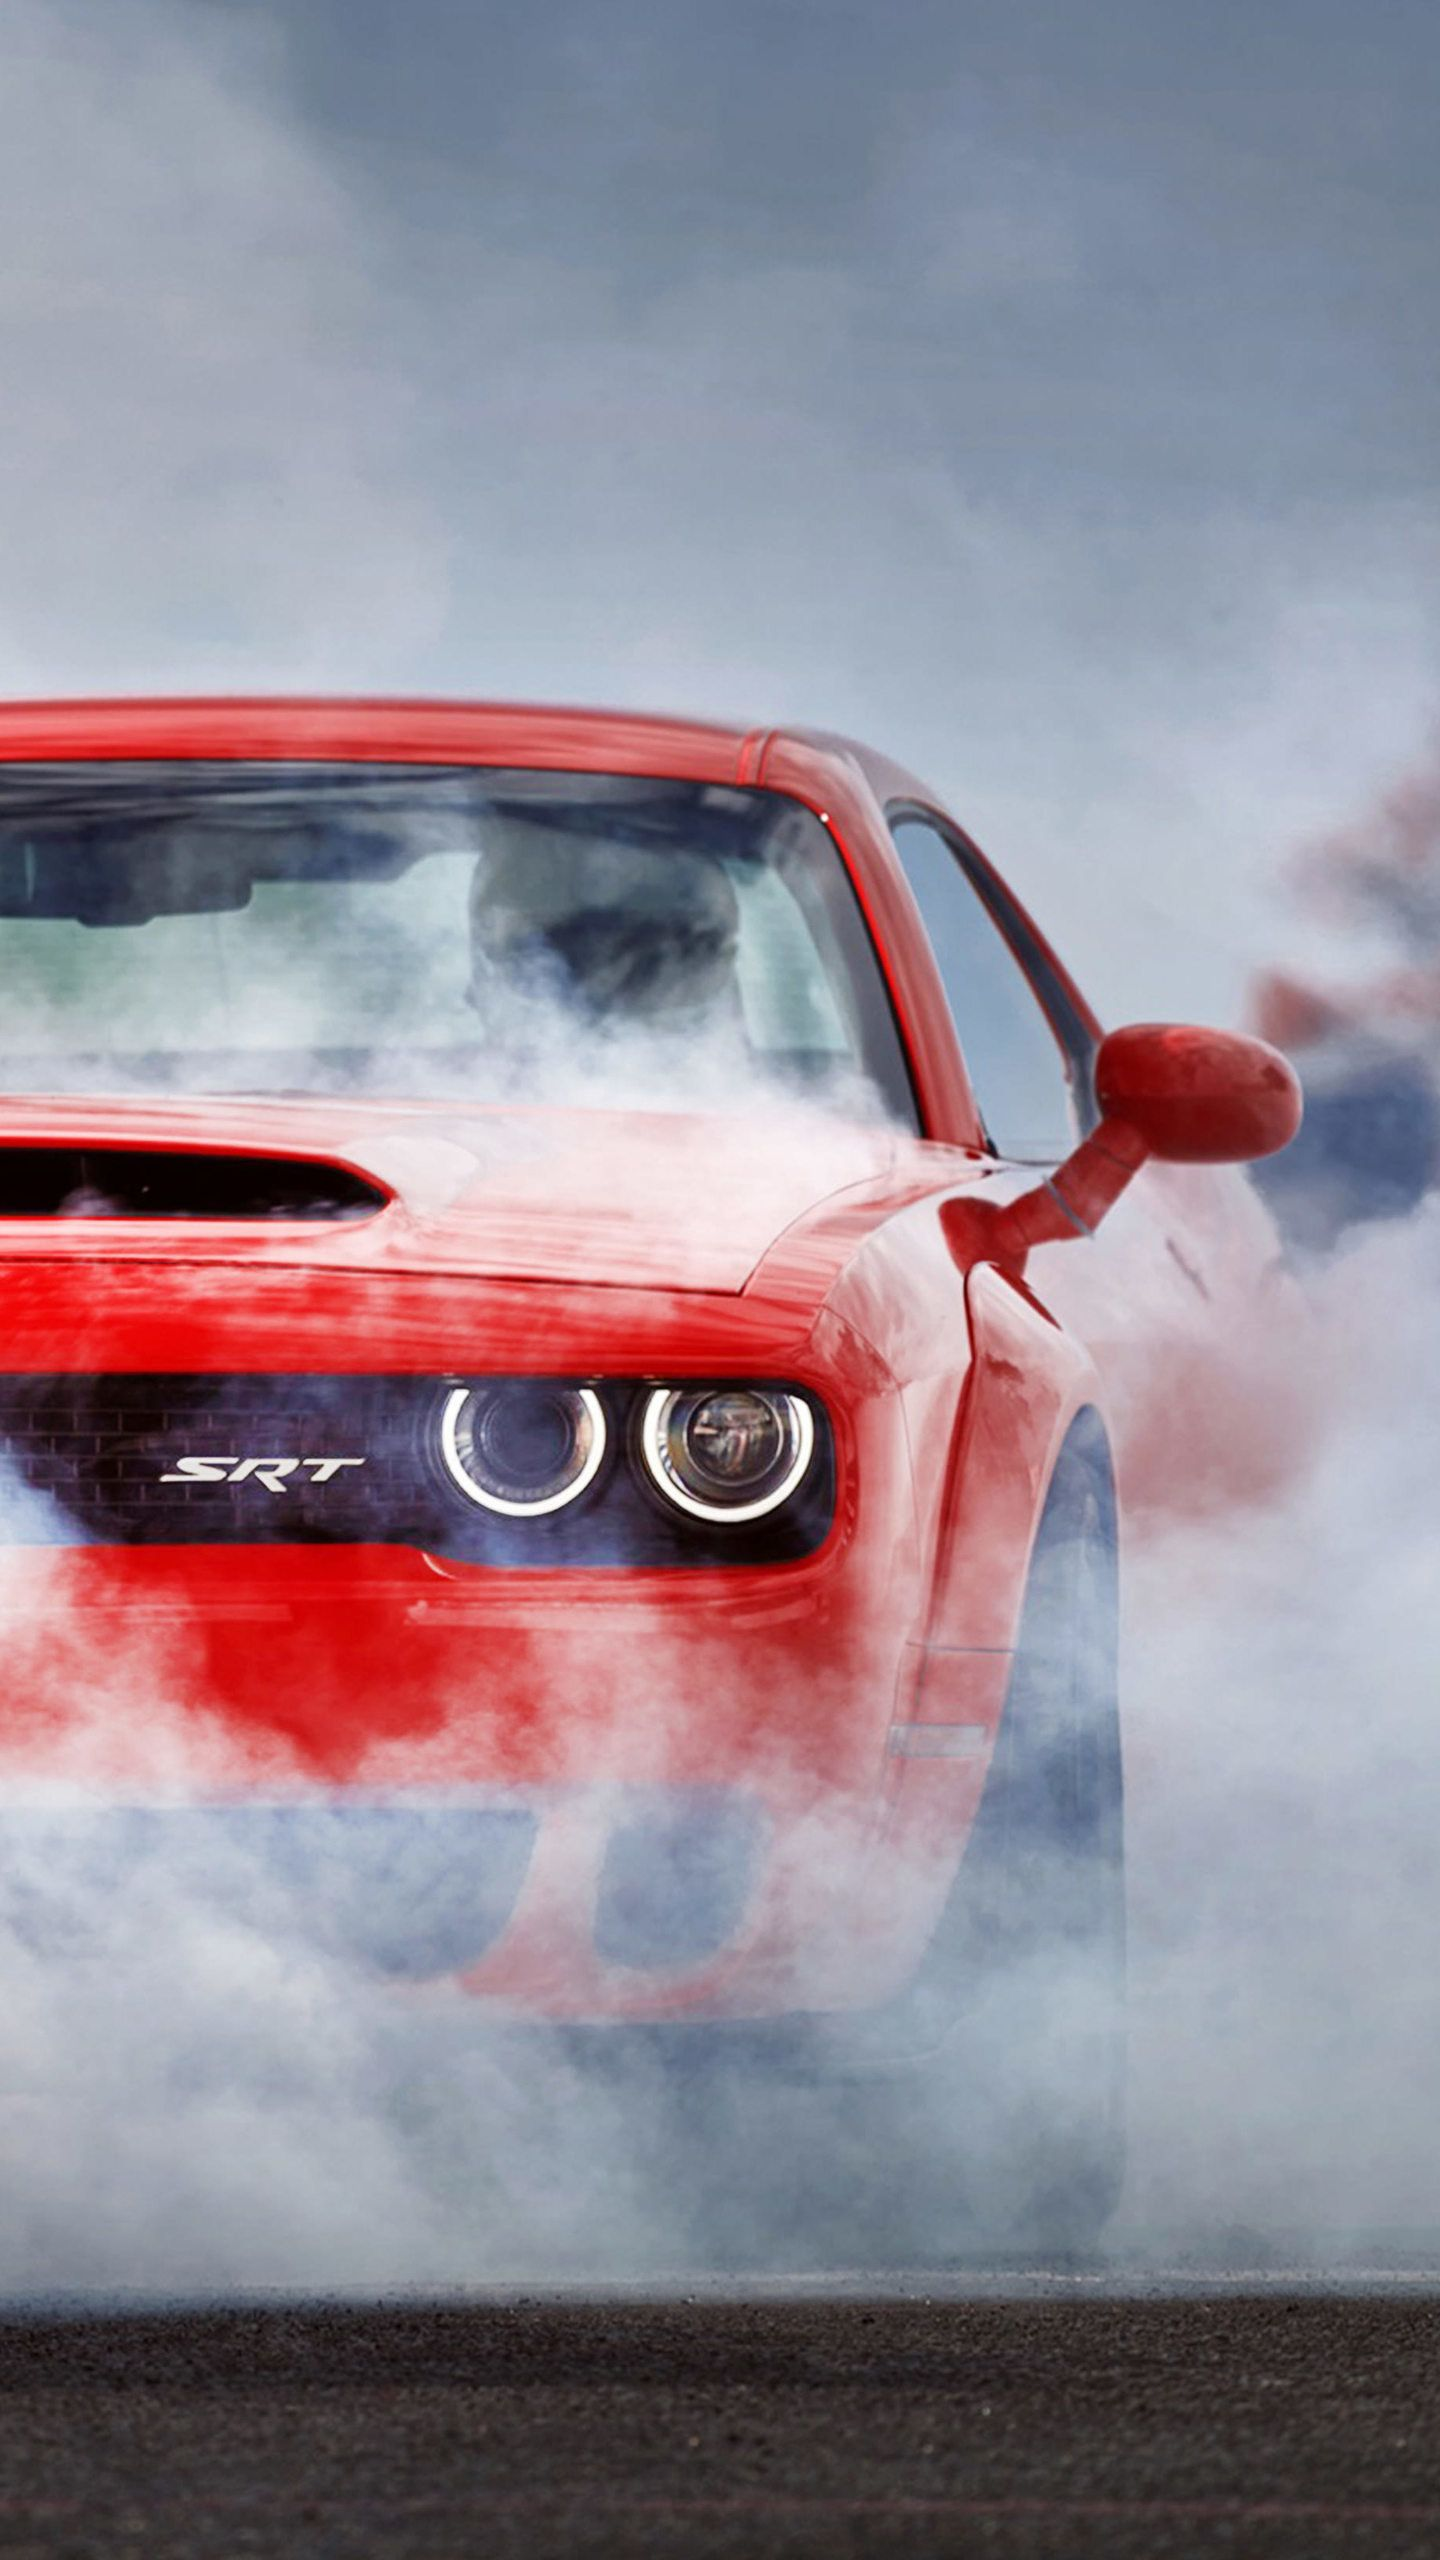 Red Dodge Challenger Hd Wallpaper In 2020 Dodge Challenger